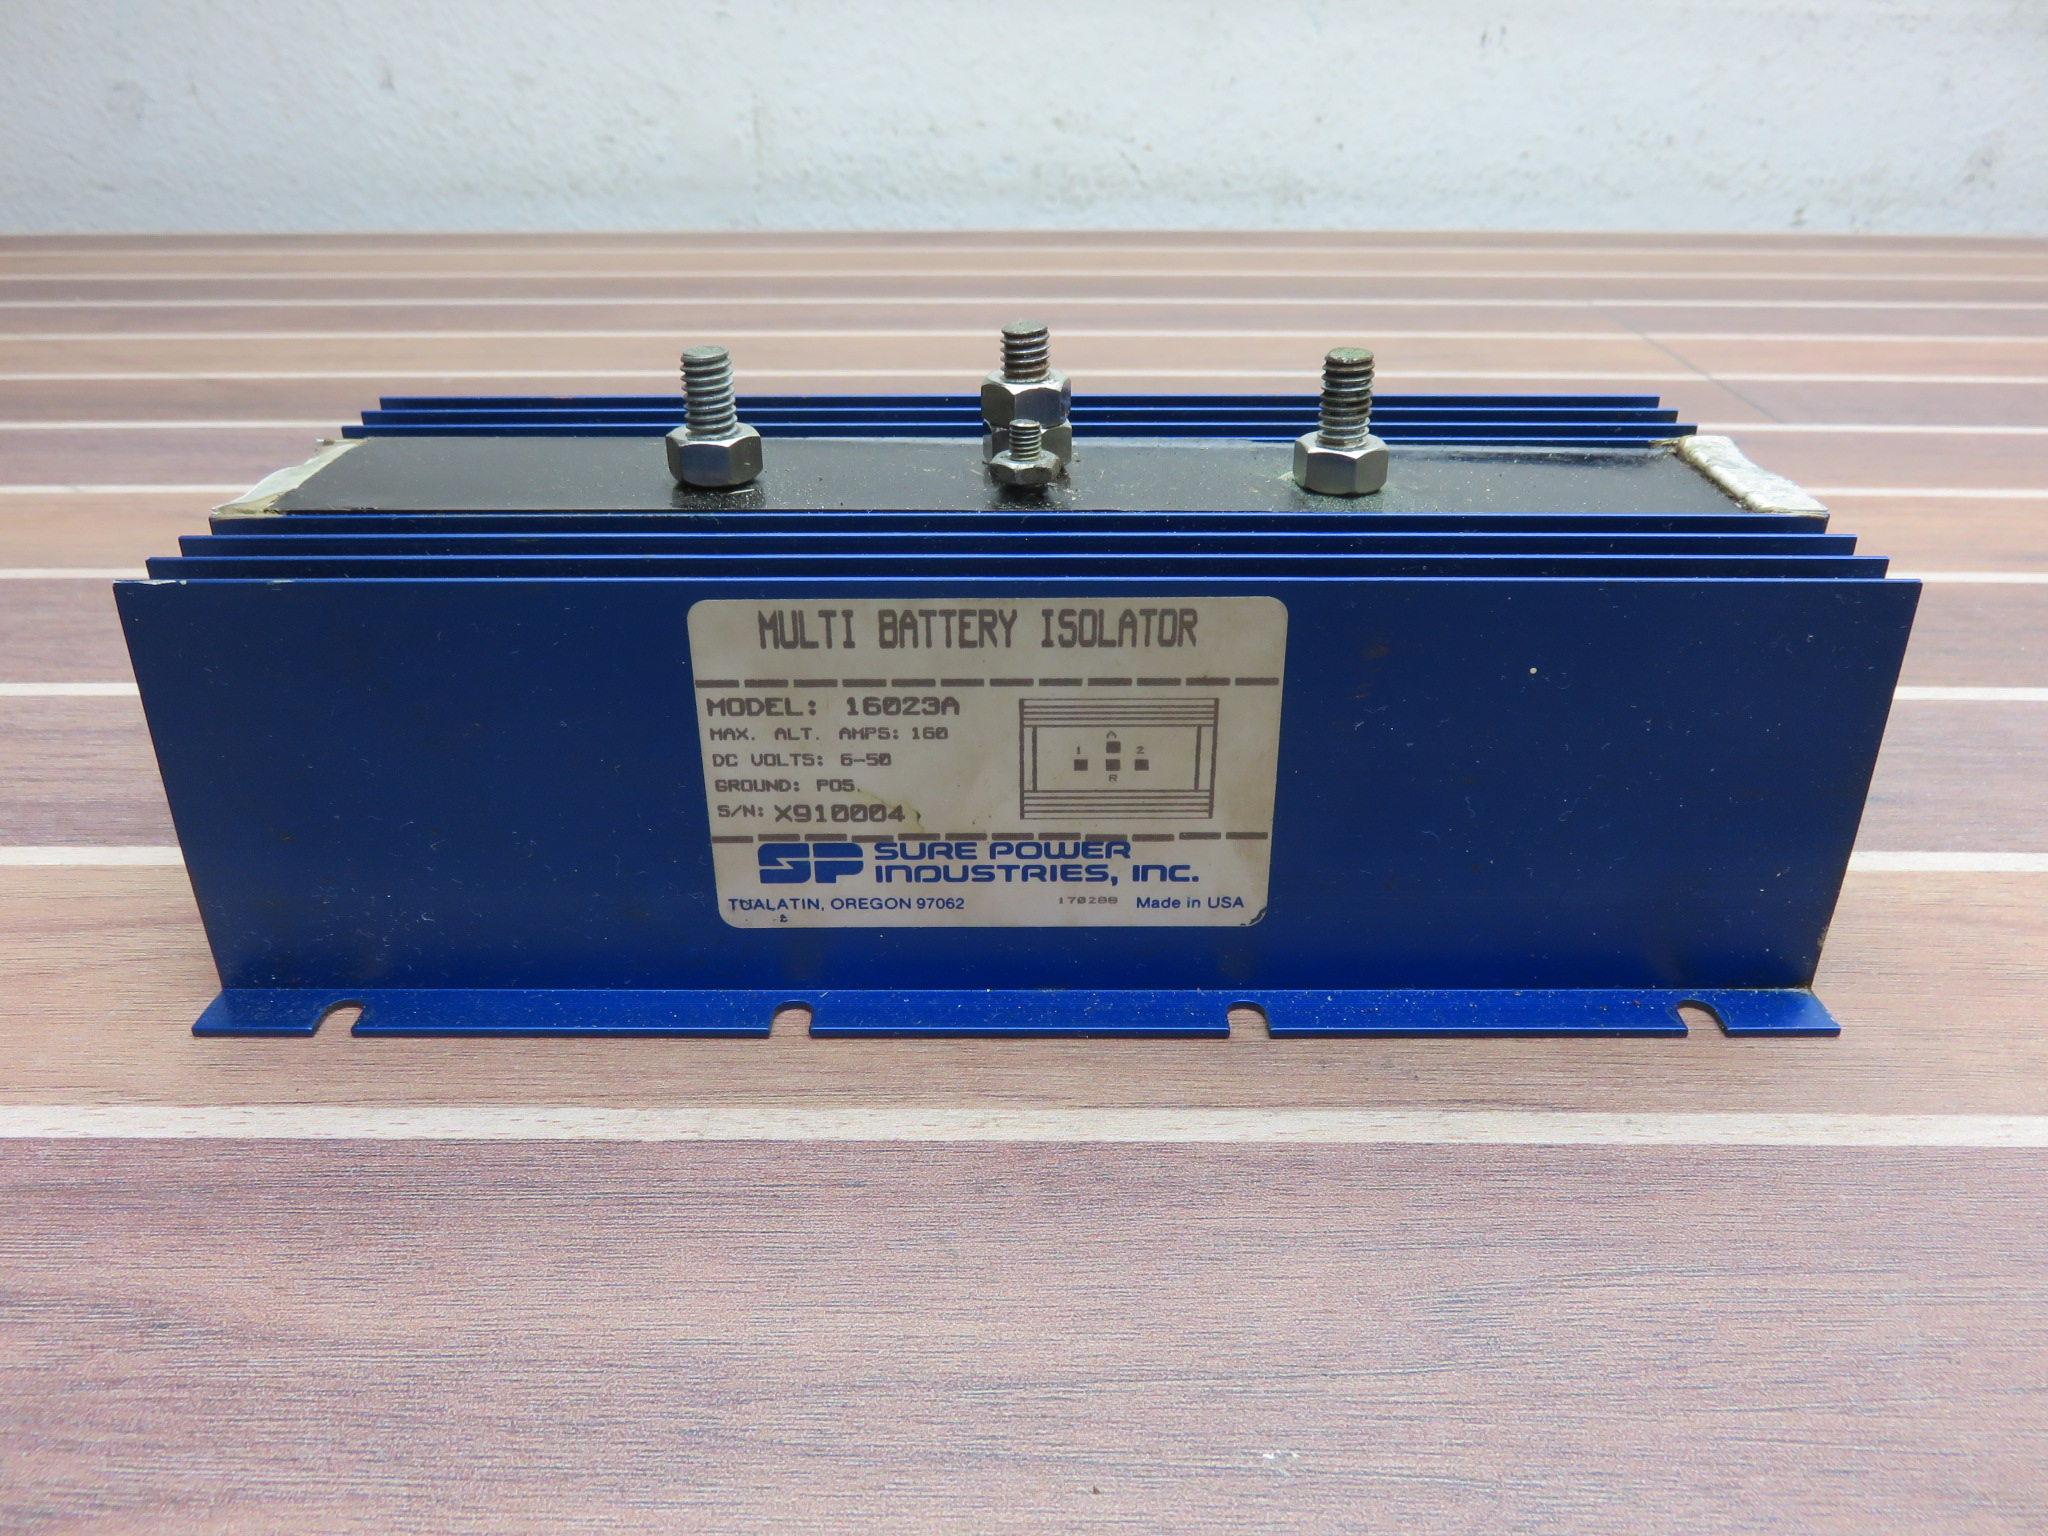 Dual Battery Isolator Sure Power Industries Inc 160Amp Negative Ground MARINE